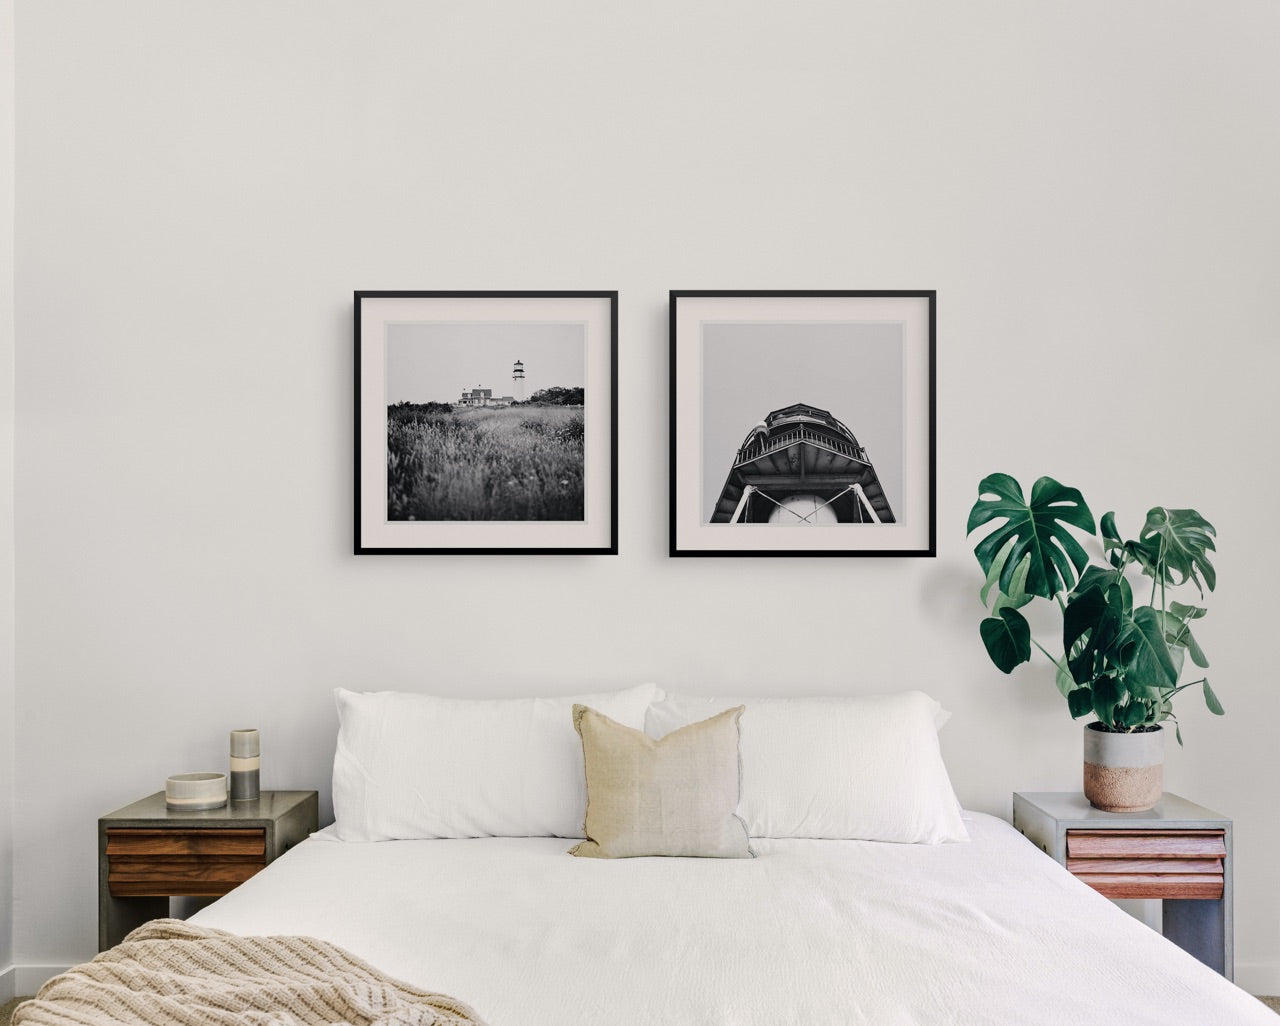 Framed black and white photo art in a bedroom